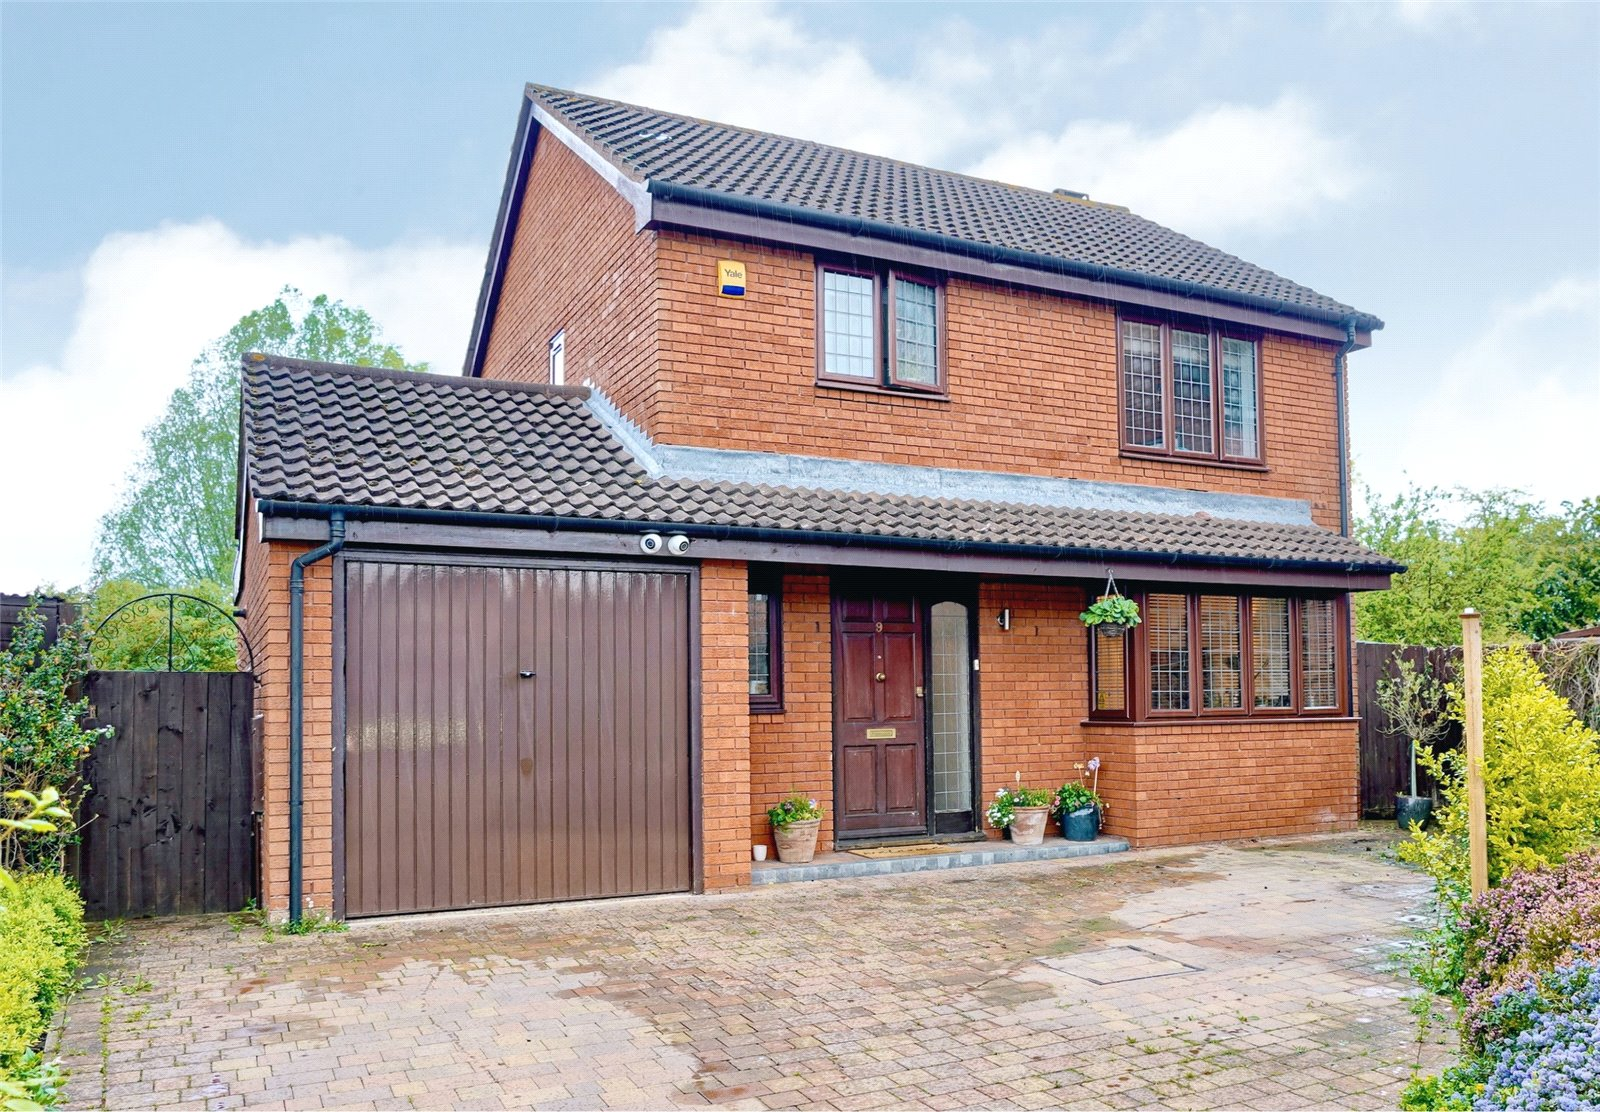 3 bed house for sale in Osier Court, Eaton Ford 0